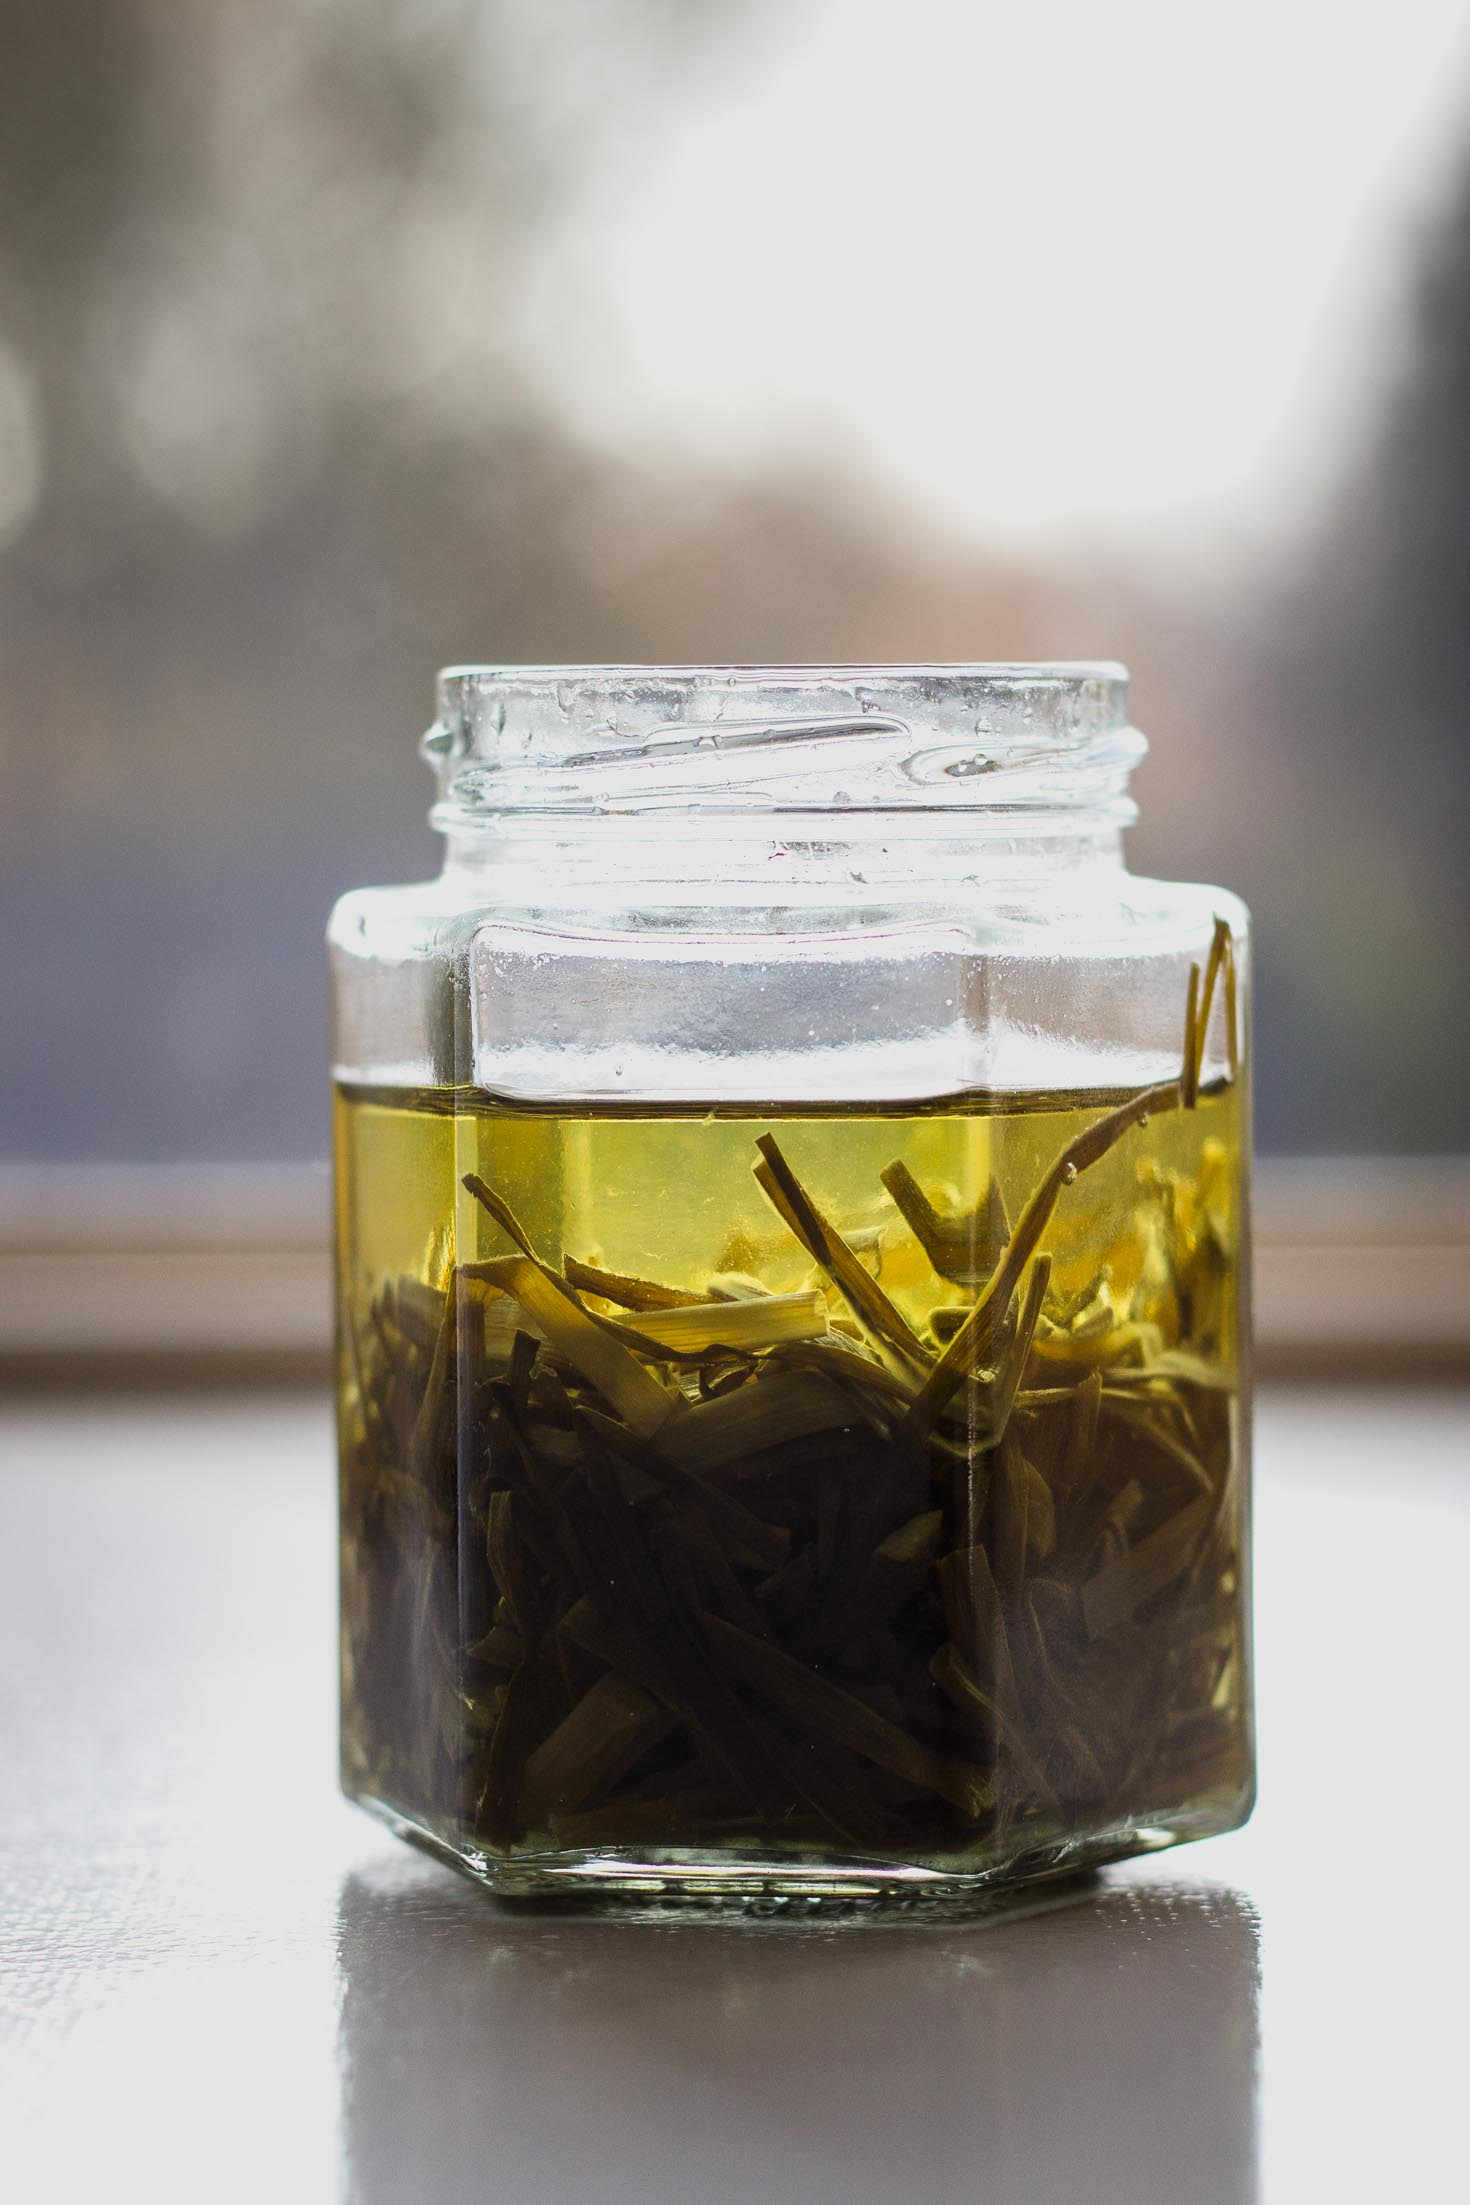 Chive Oil Glass Noodle Kale Salad-chive oil in a glass jar